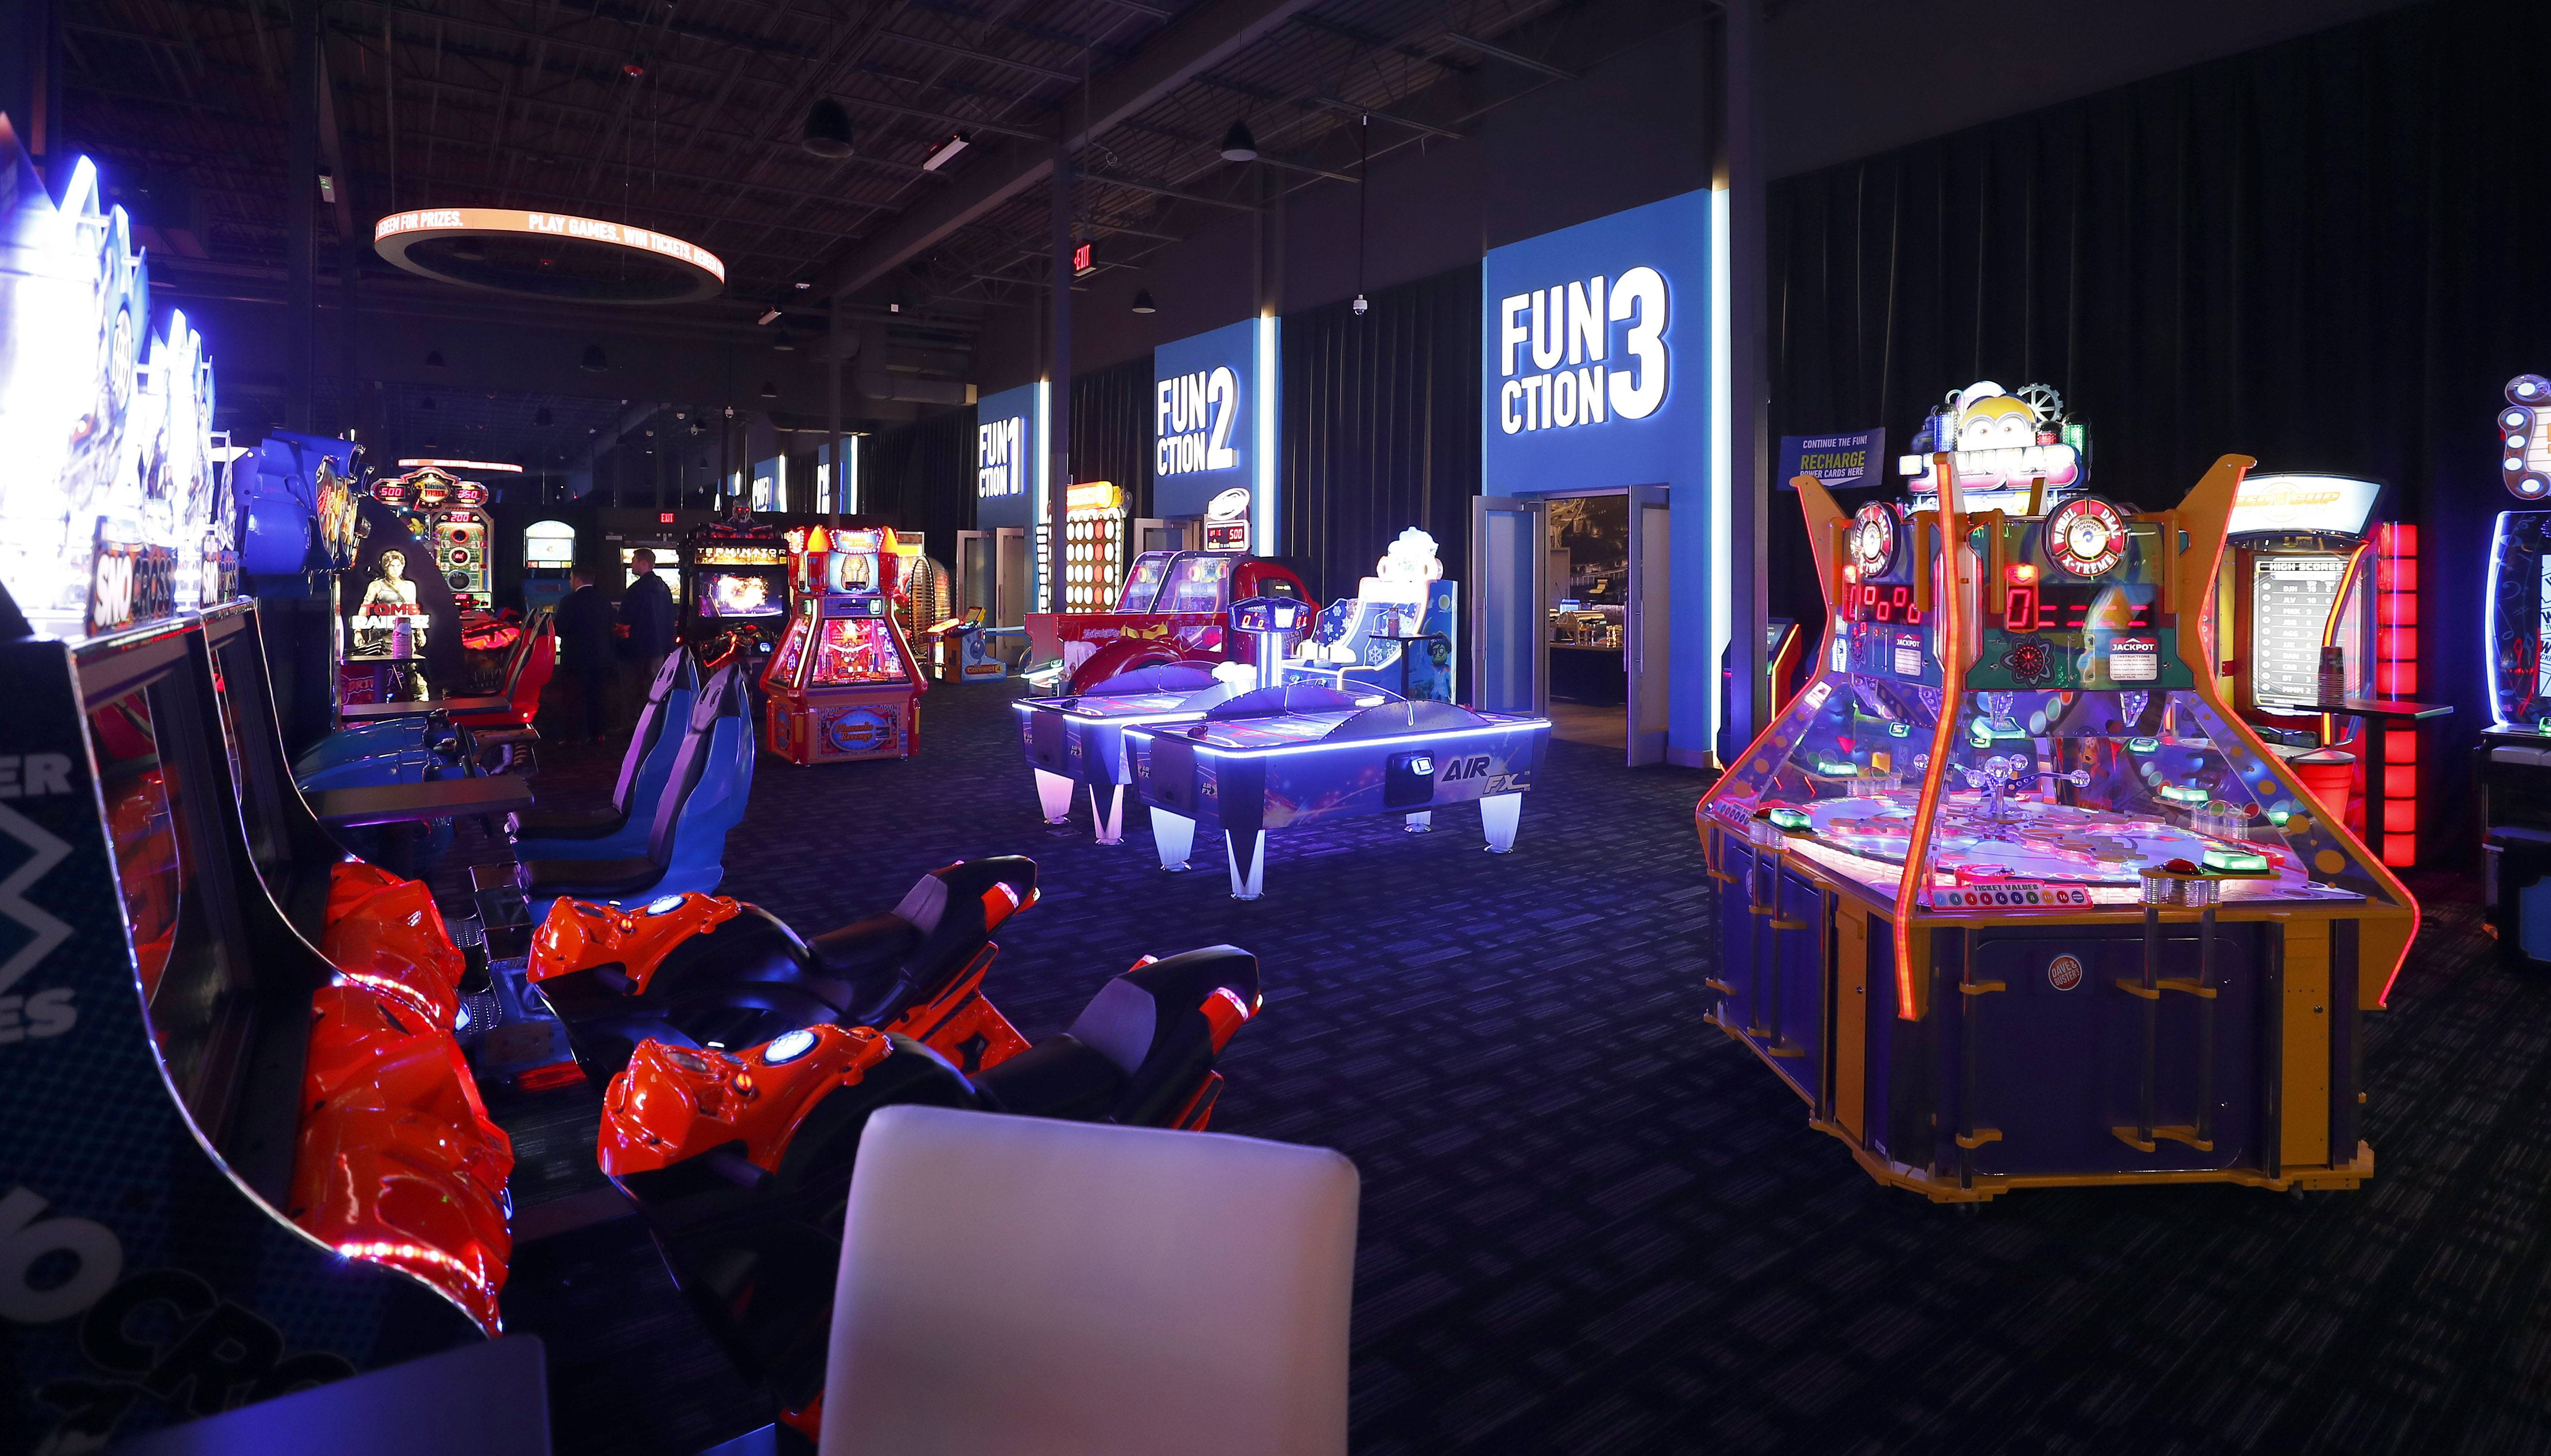 The game room at the new Dave & Buster's location in Rosemont features 155 of arcade games. The restaurant opens Monday.